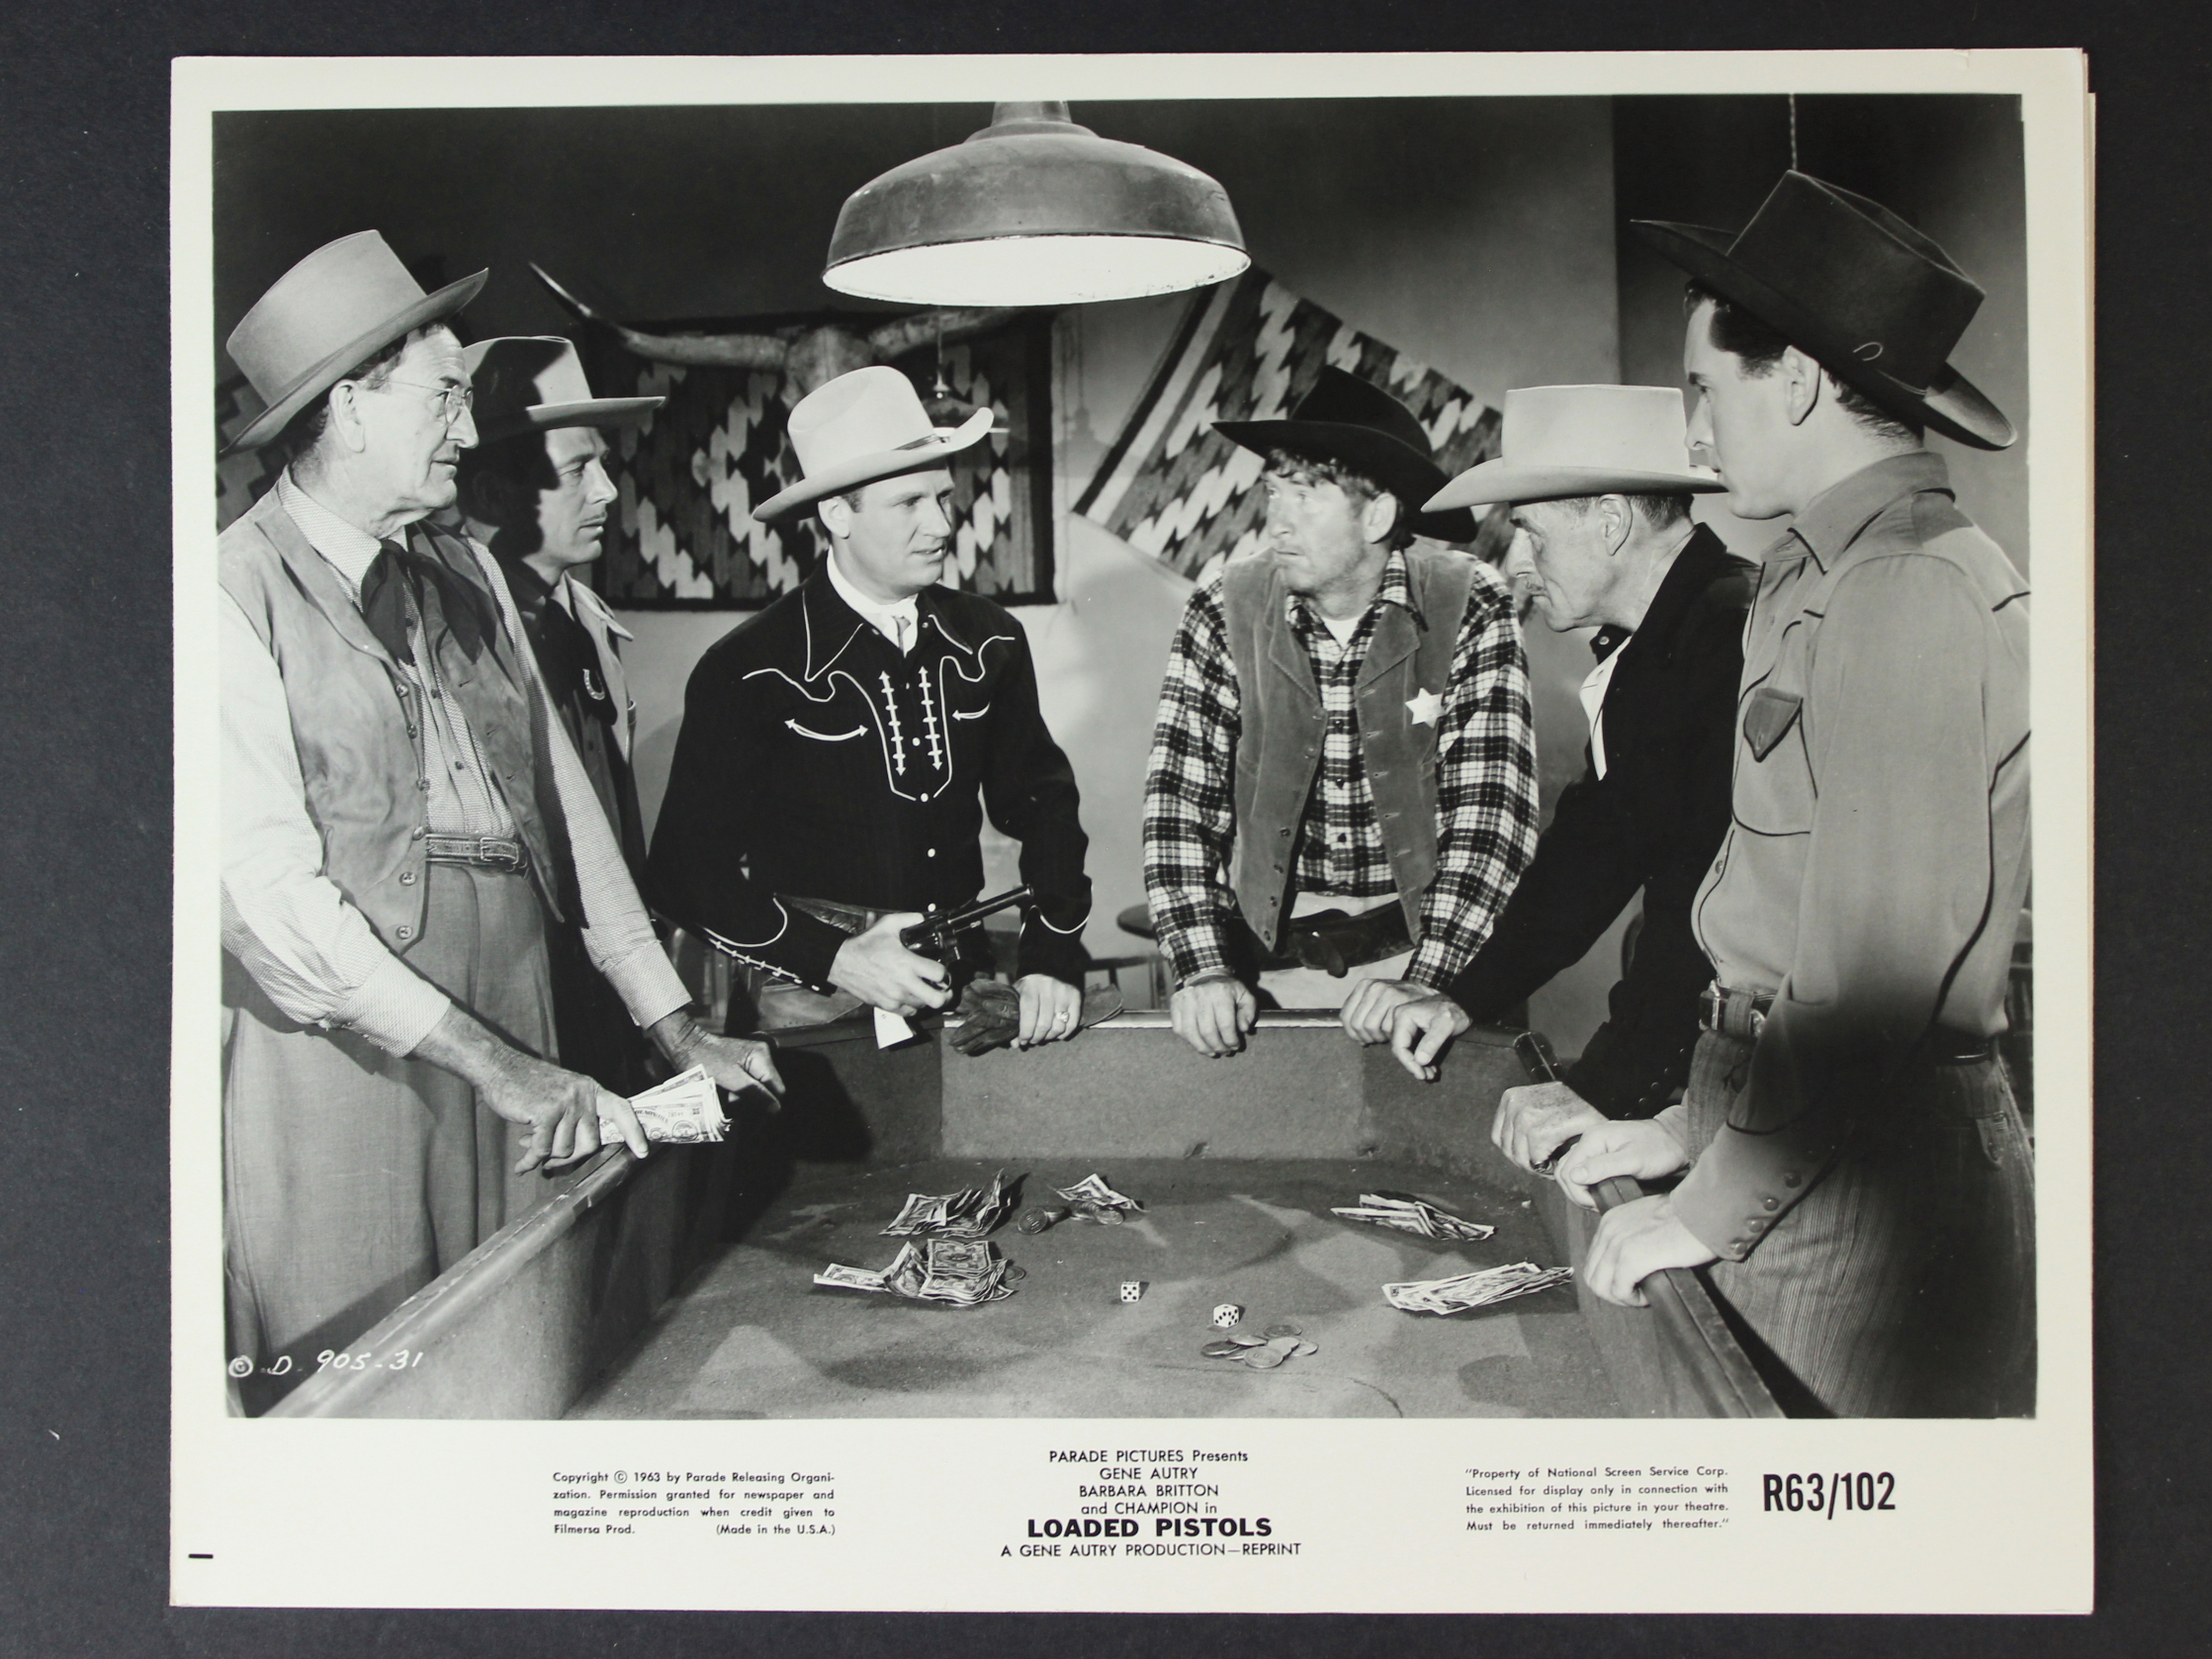 Gene Autry, Russell Arms, Jack Holt, Robert Shayne, Leon Weaver, and Chill Wills in Loaded Pistols (1948)